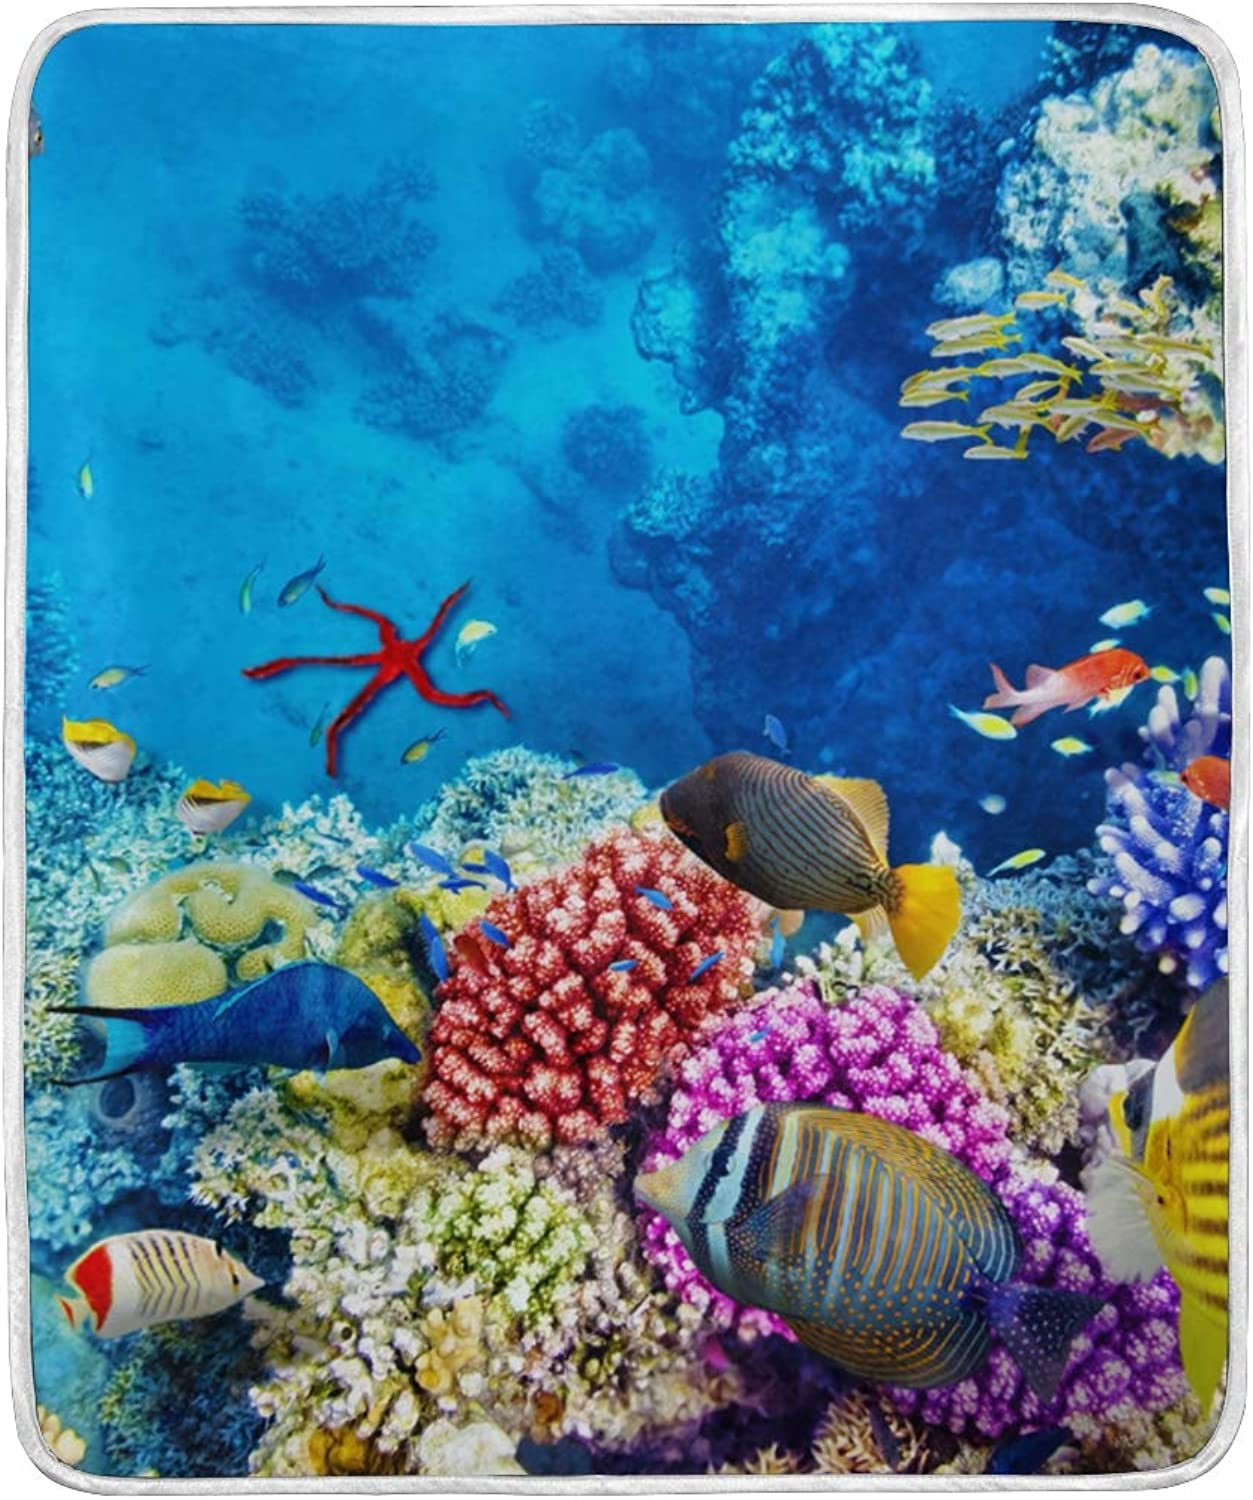 Ocean Sea Aquatic World Clown Fish Coral Throw Blanket Soft Nap Couch Bed Blankets Kid Boy Girl Women Men 50x60 inch